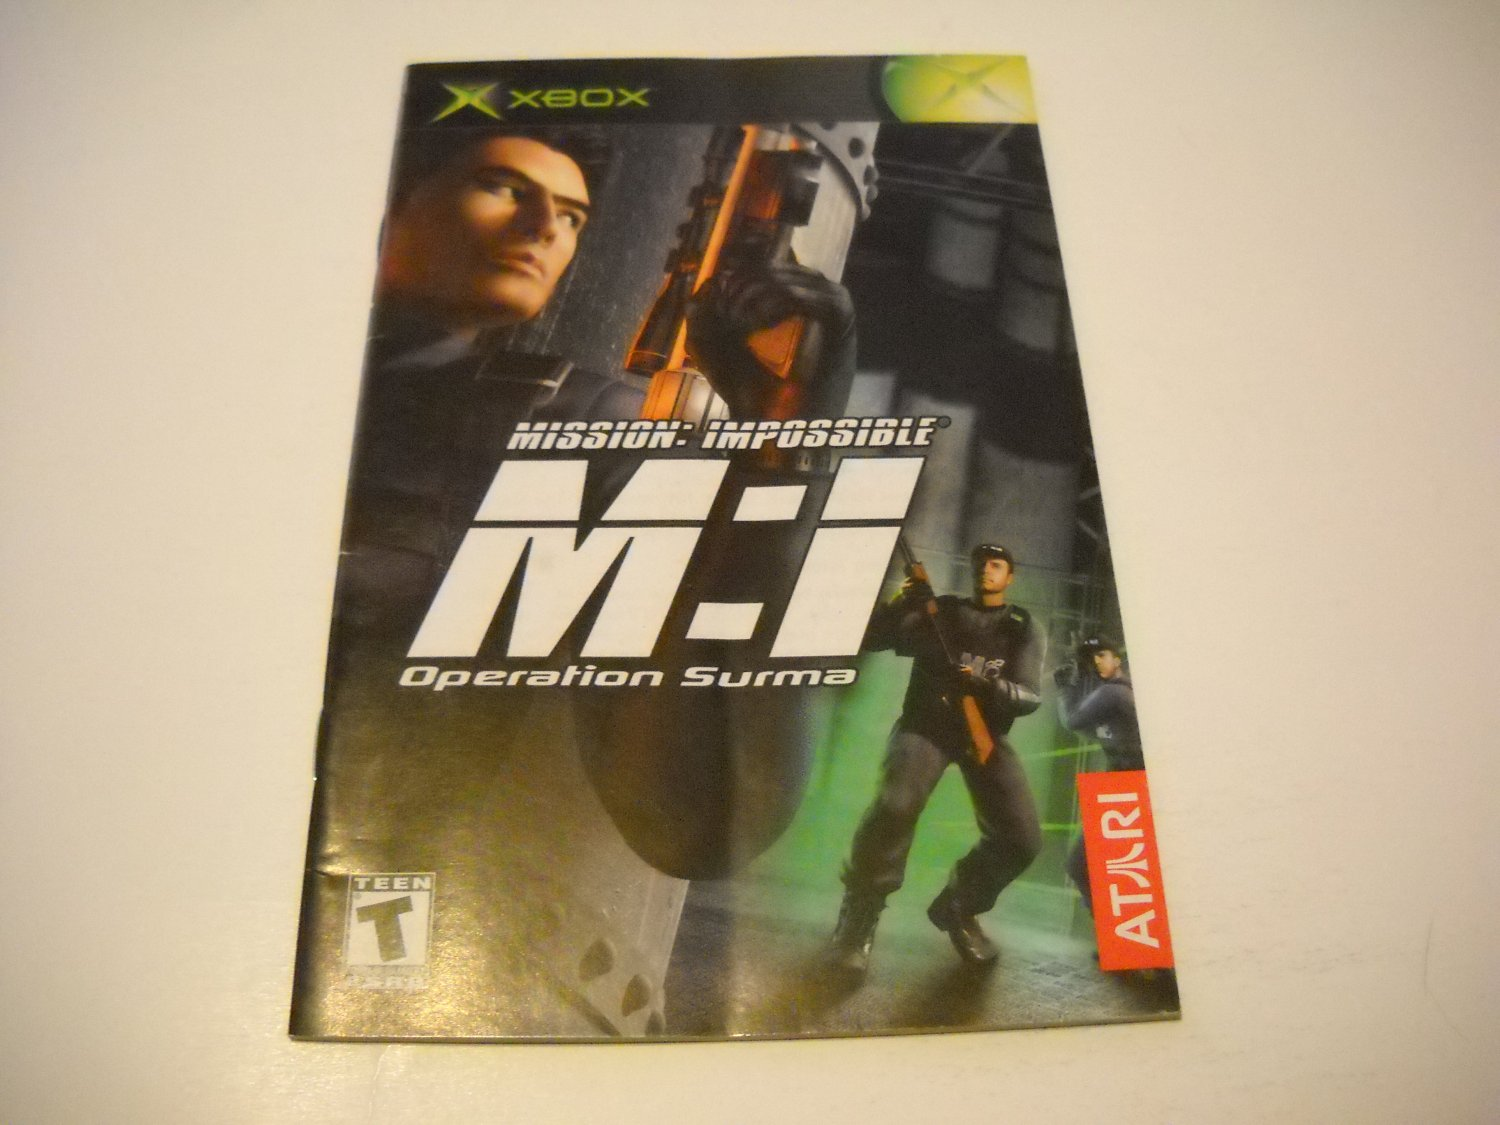 Manual ONLY ~  for Mission Impossible Operation Surma   Xbox